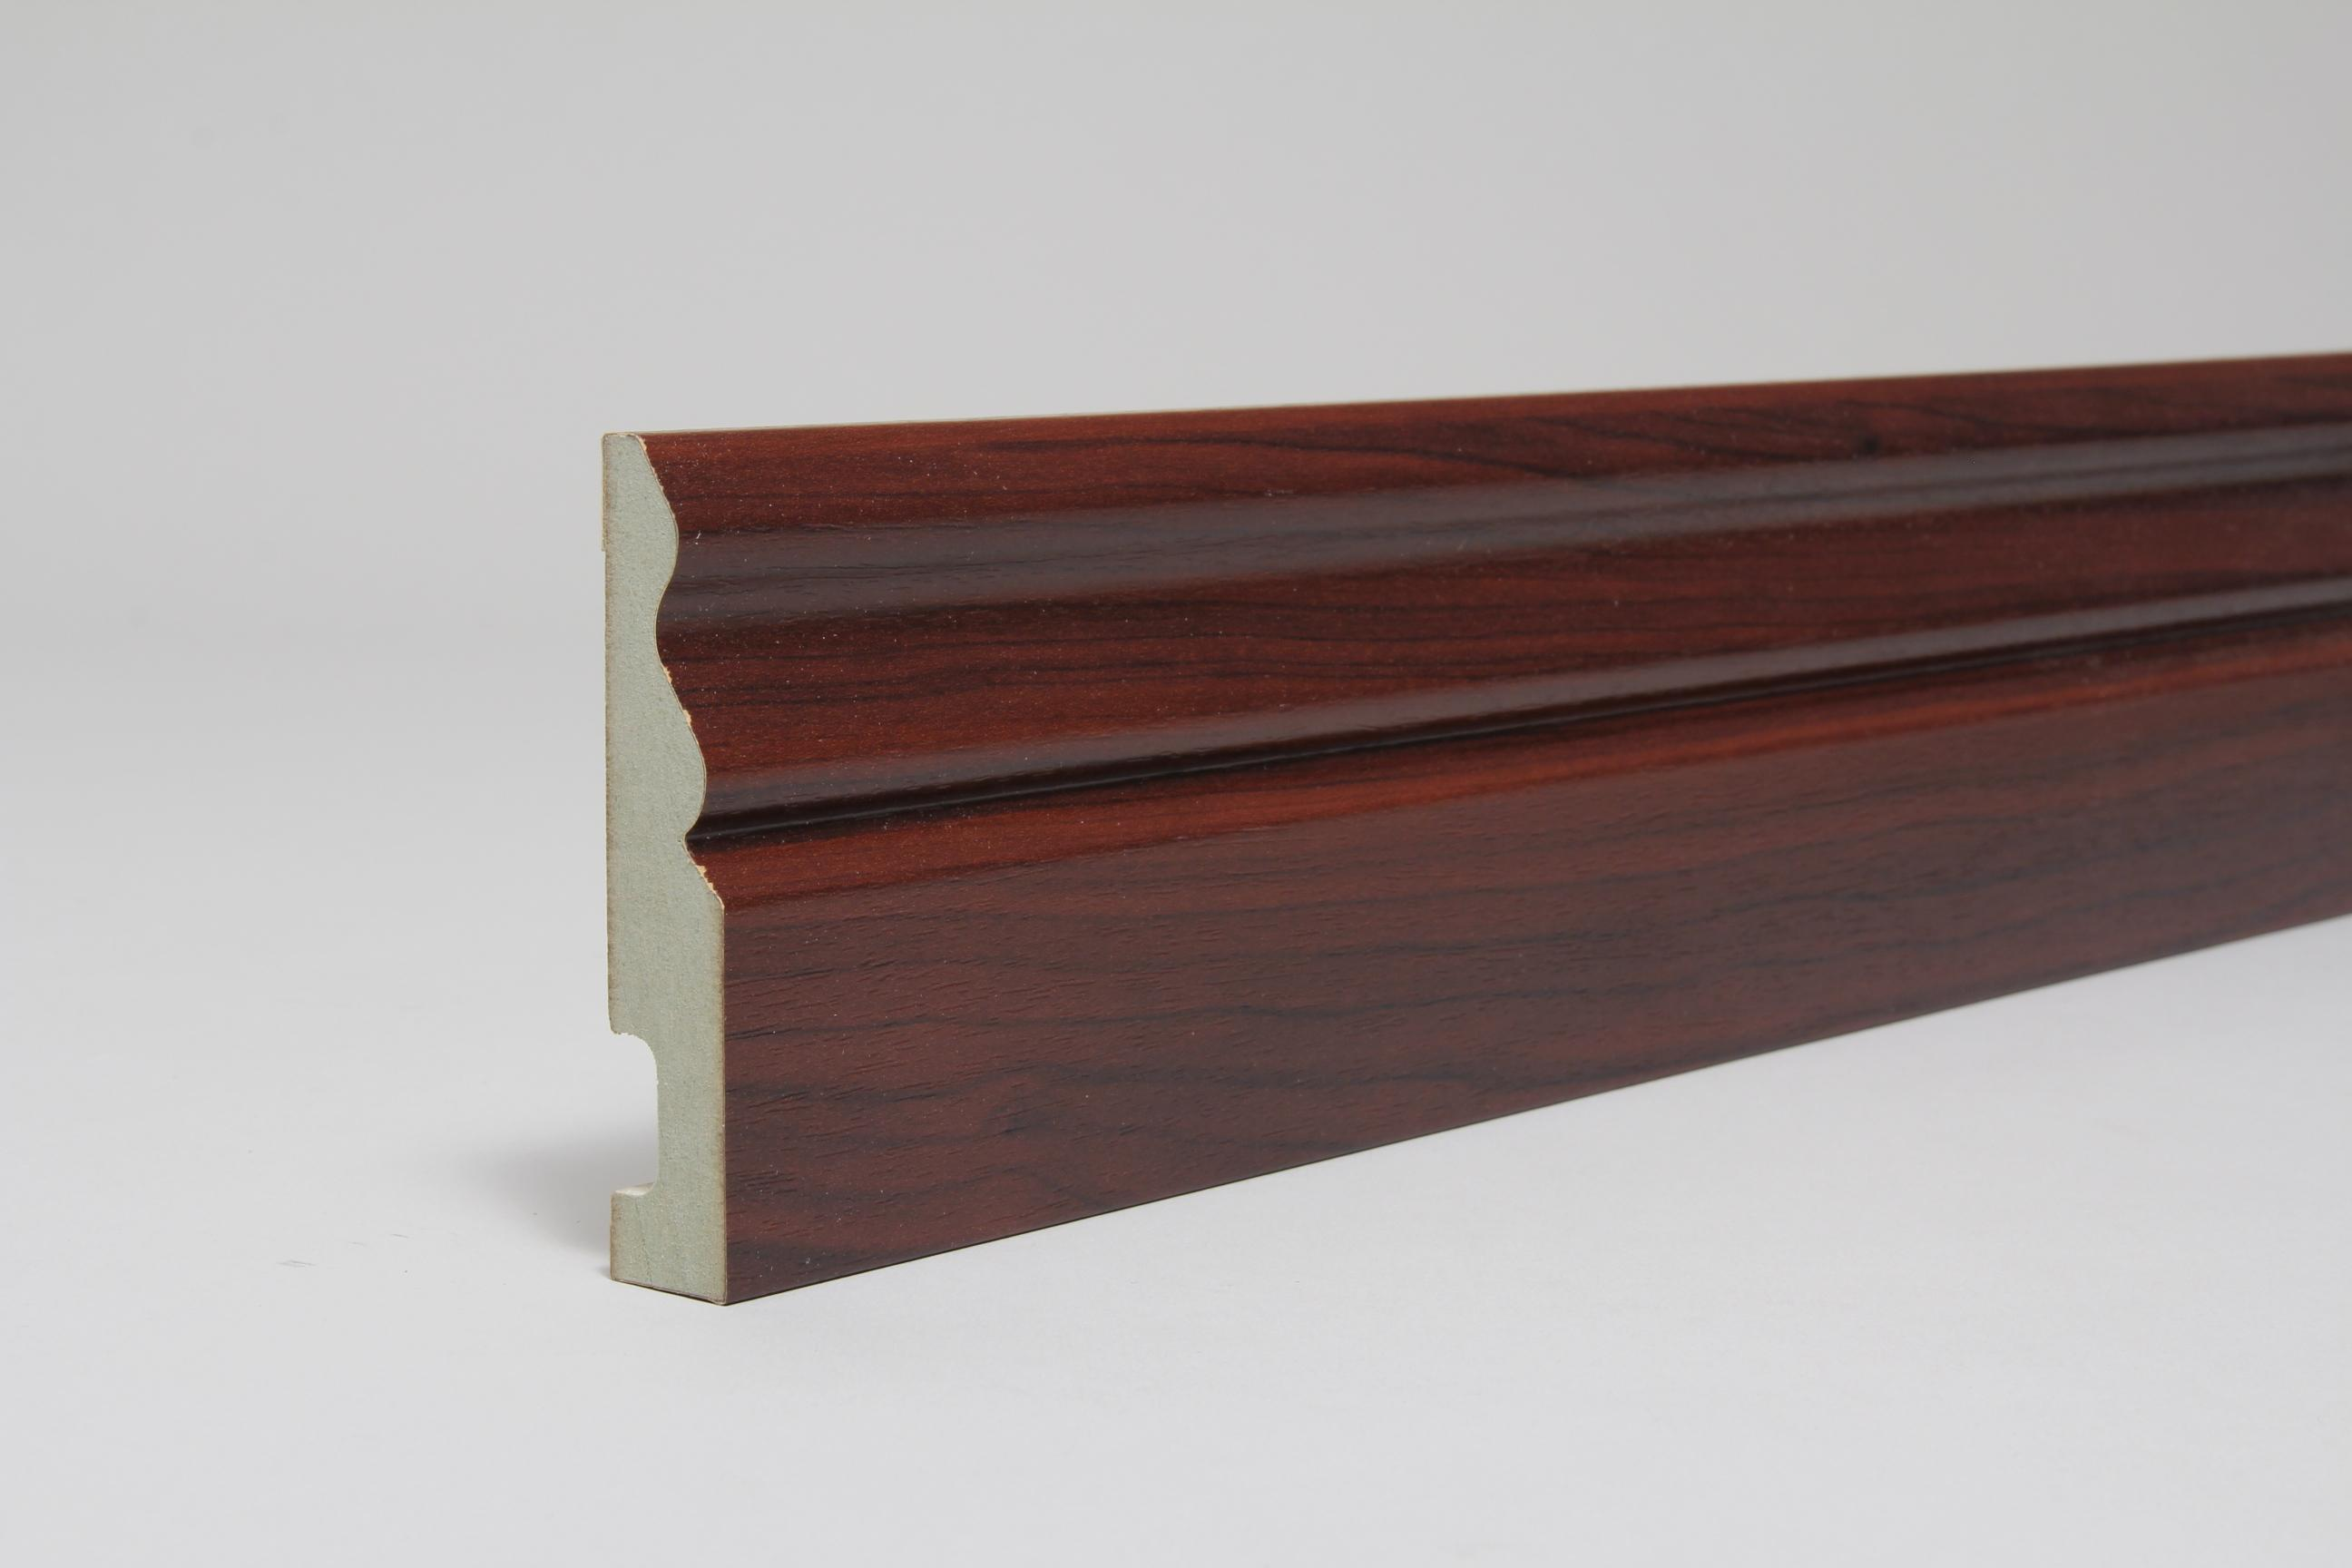 Ogee 18mm x 94mm x 4.4 Mtr Rosewood Fully Finished Foil Wrapped (Special Offer)